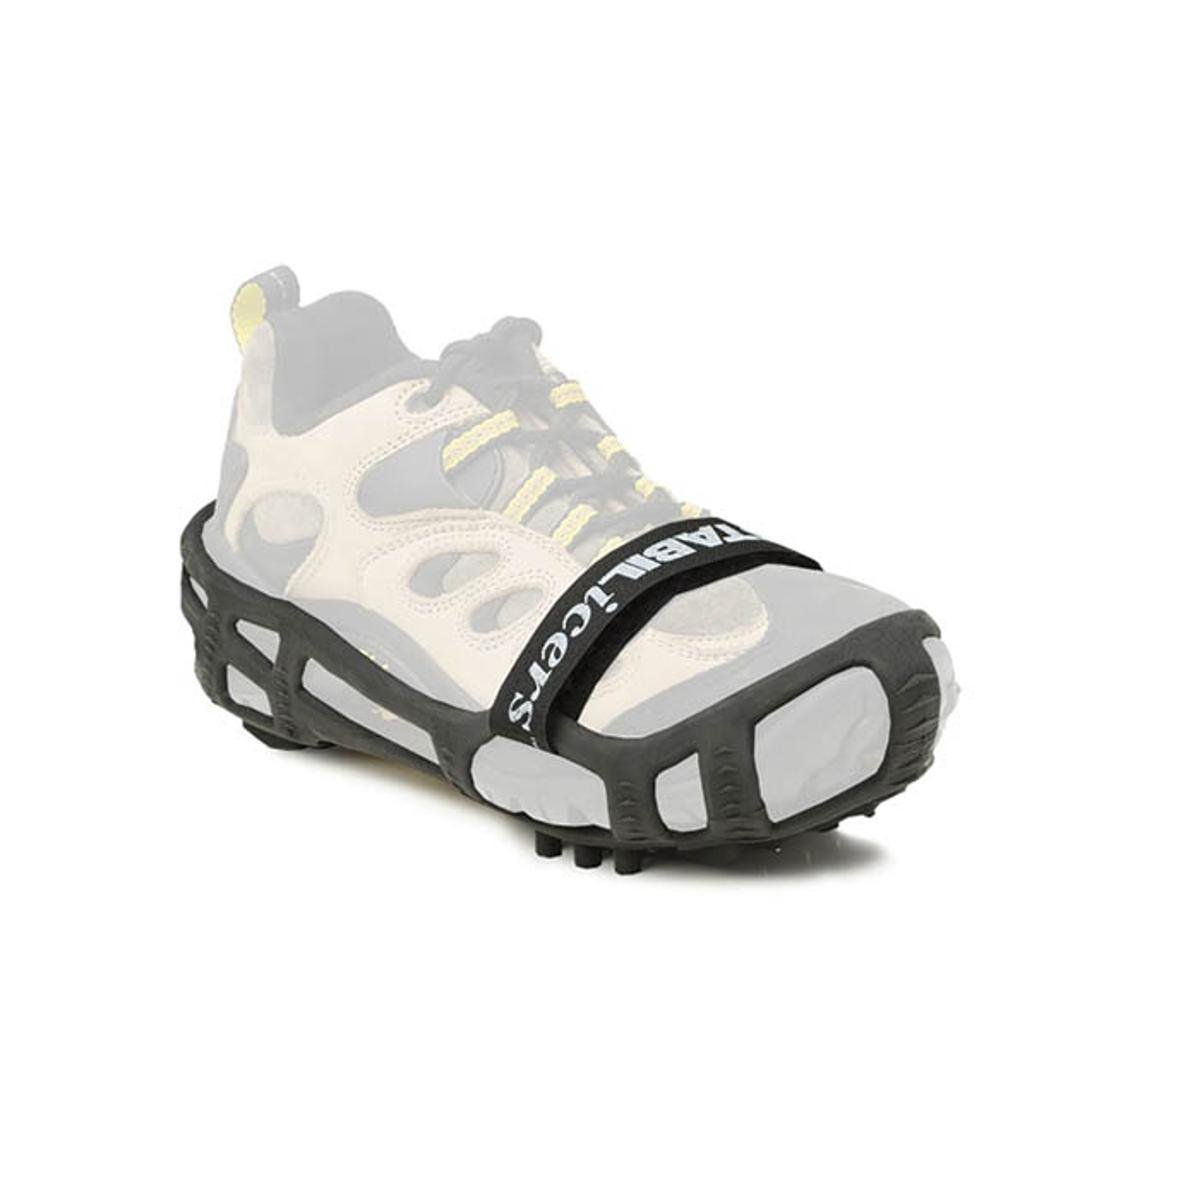 STABILicers Walk Stabilicers Ice Traction Cleat for Snow and Ice - Lite Duty Serious Traction cleats for Boots and Shoe Ice Cleats 32 NORTH